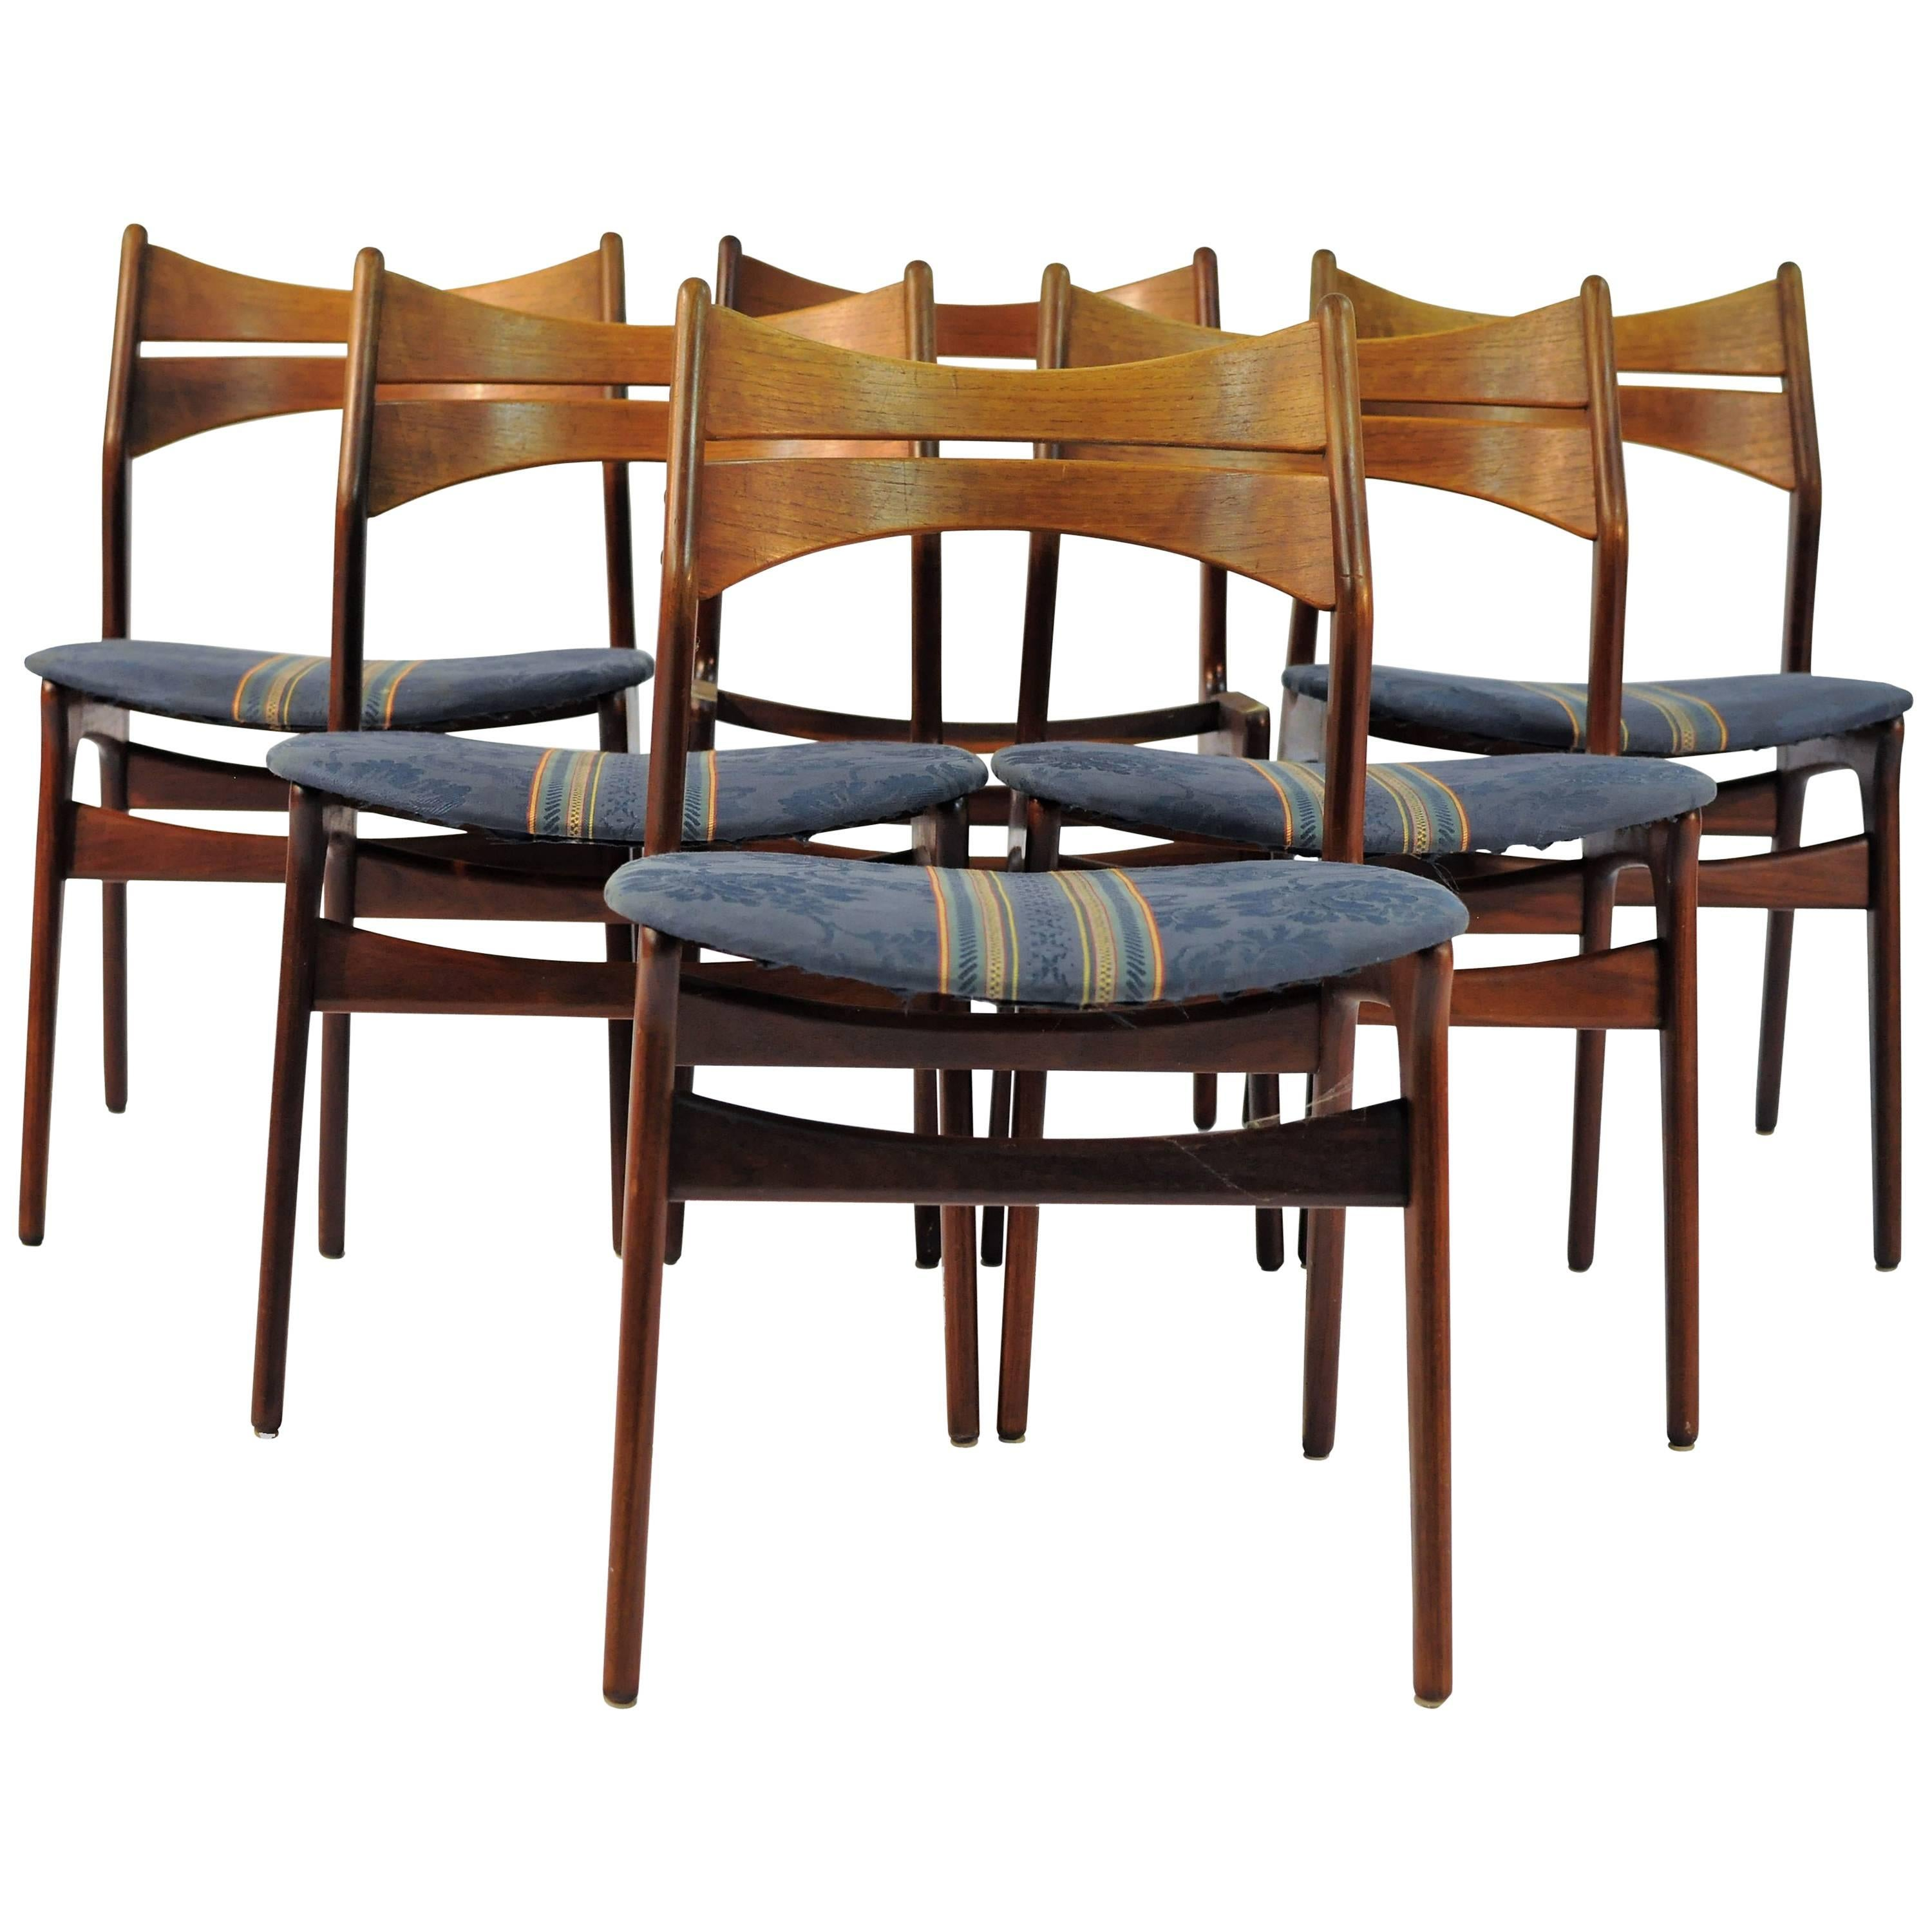 1950s Set Of Six Erik Buch Model 310 Dining Chairs In Teak And Fabric 1